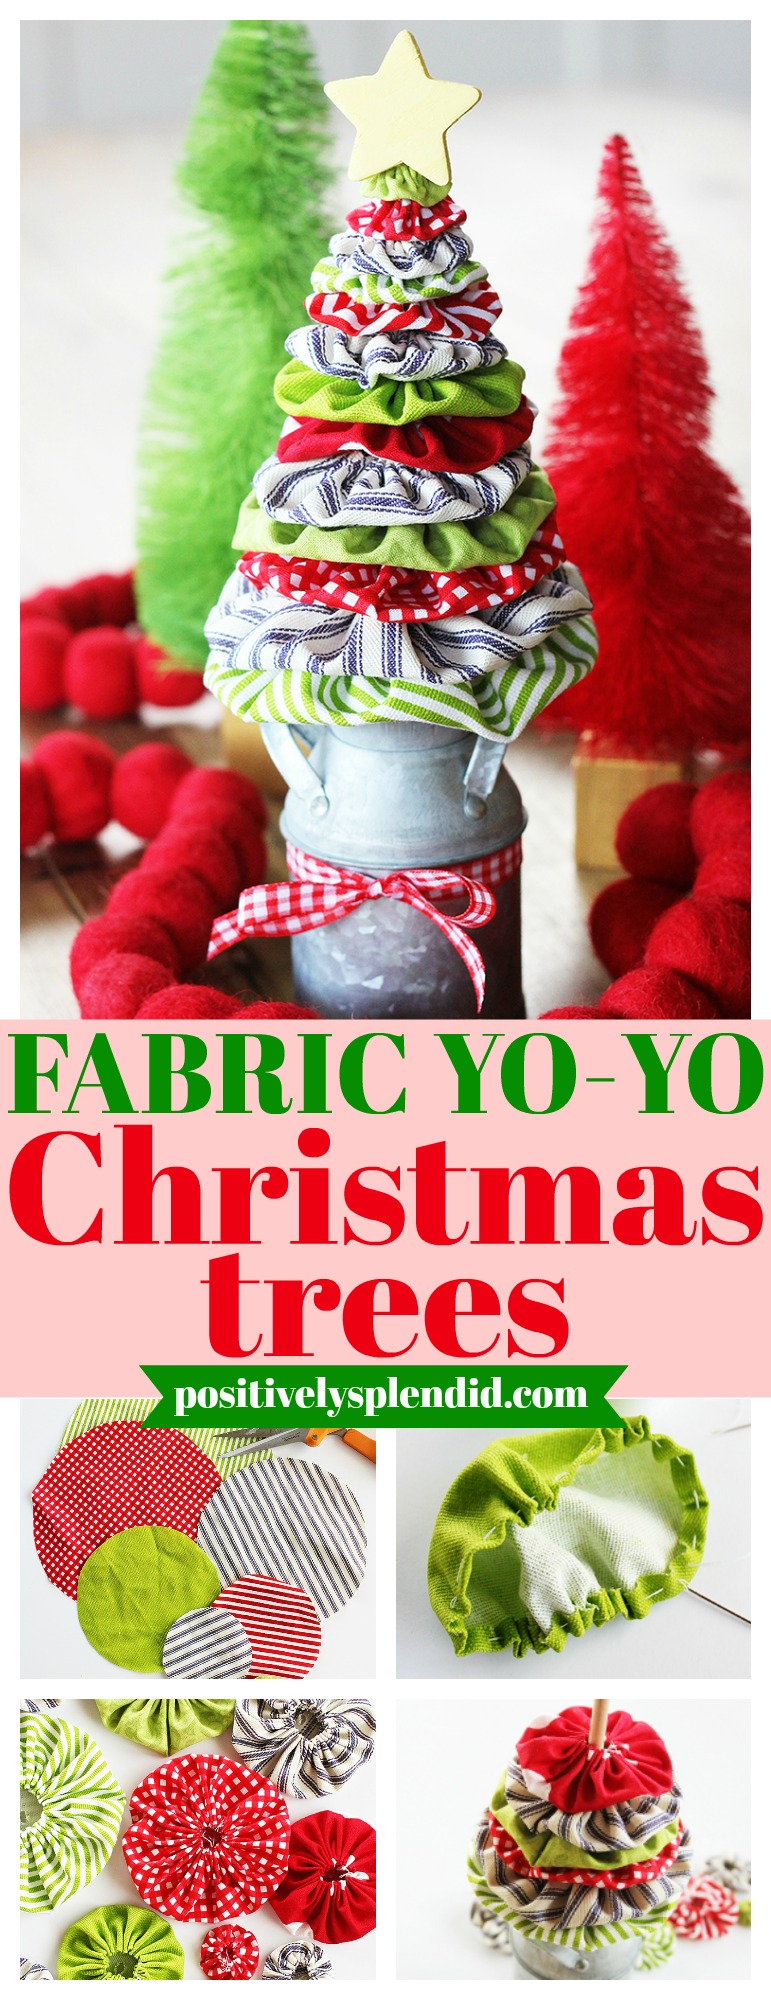 Fabric Yo-Yo Christmas Tree Tutorial and Templates